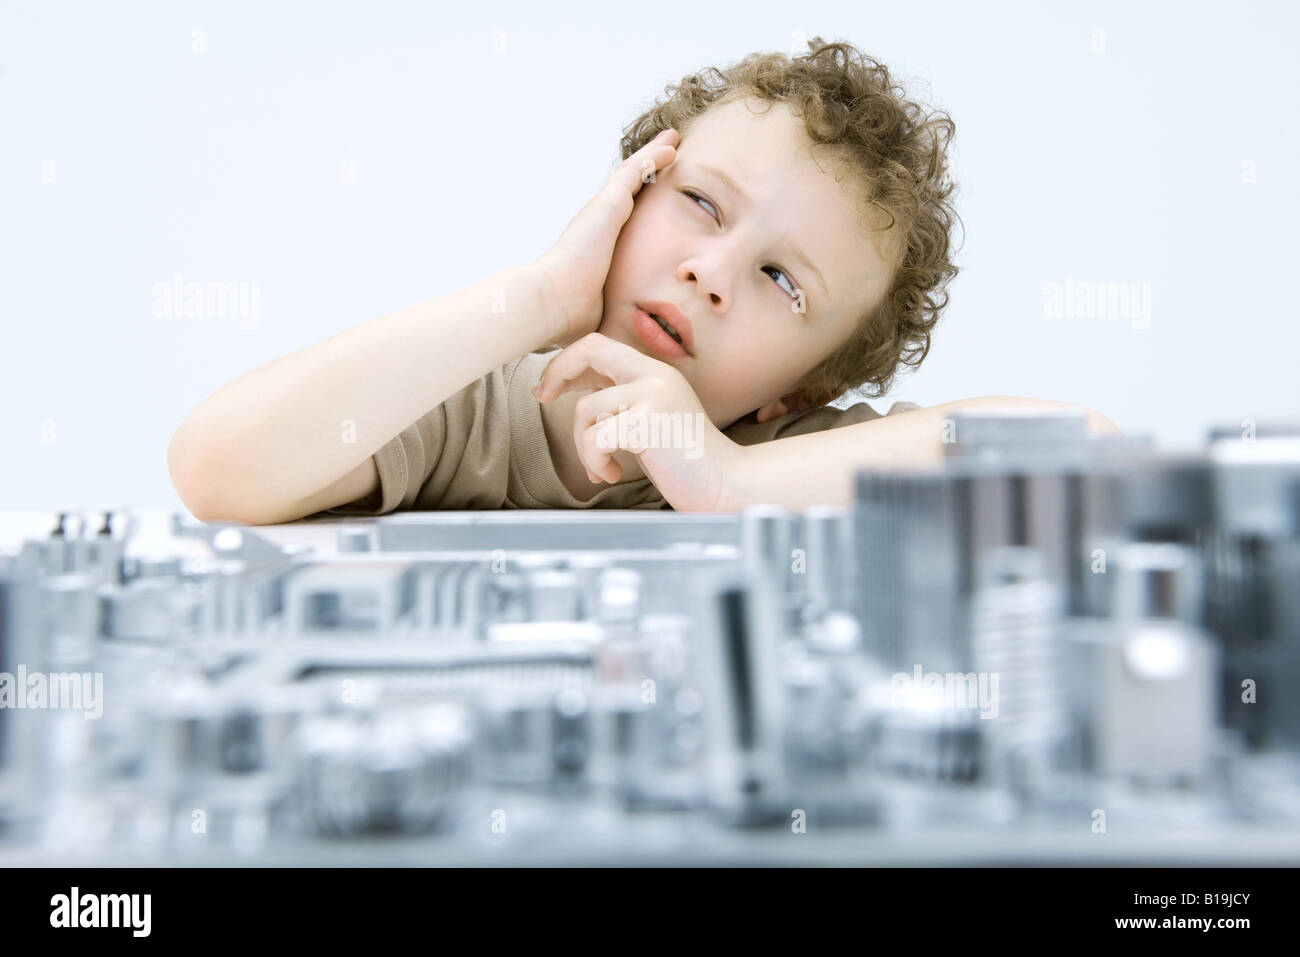 Little boy next to circuit board, holding head, looking up - Stock Image